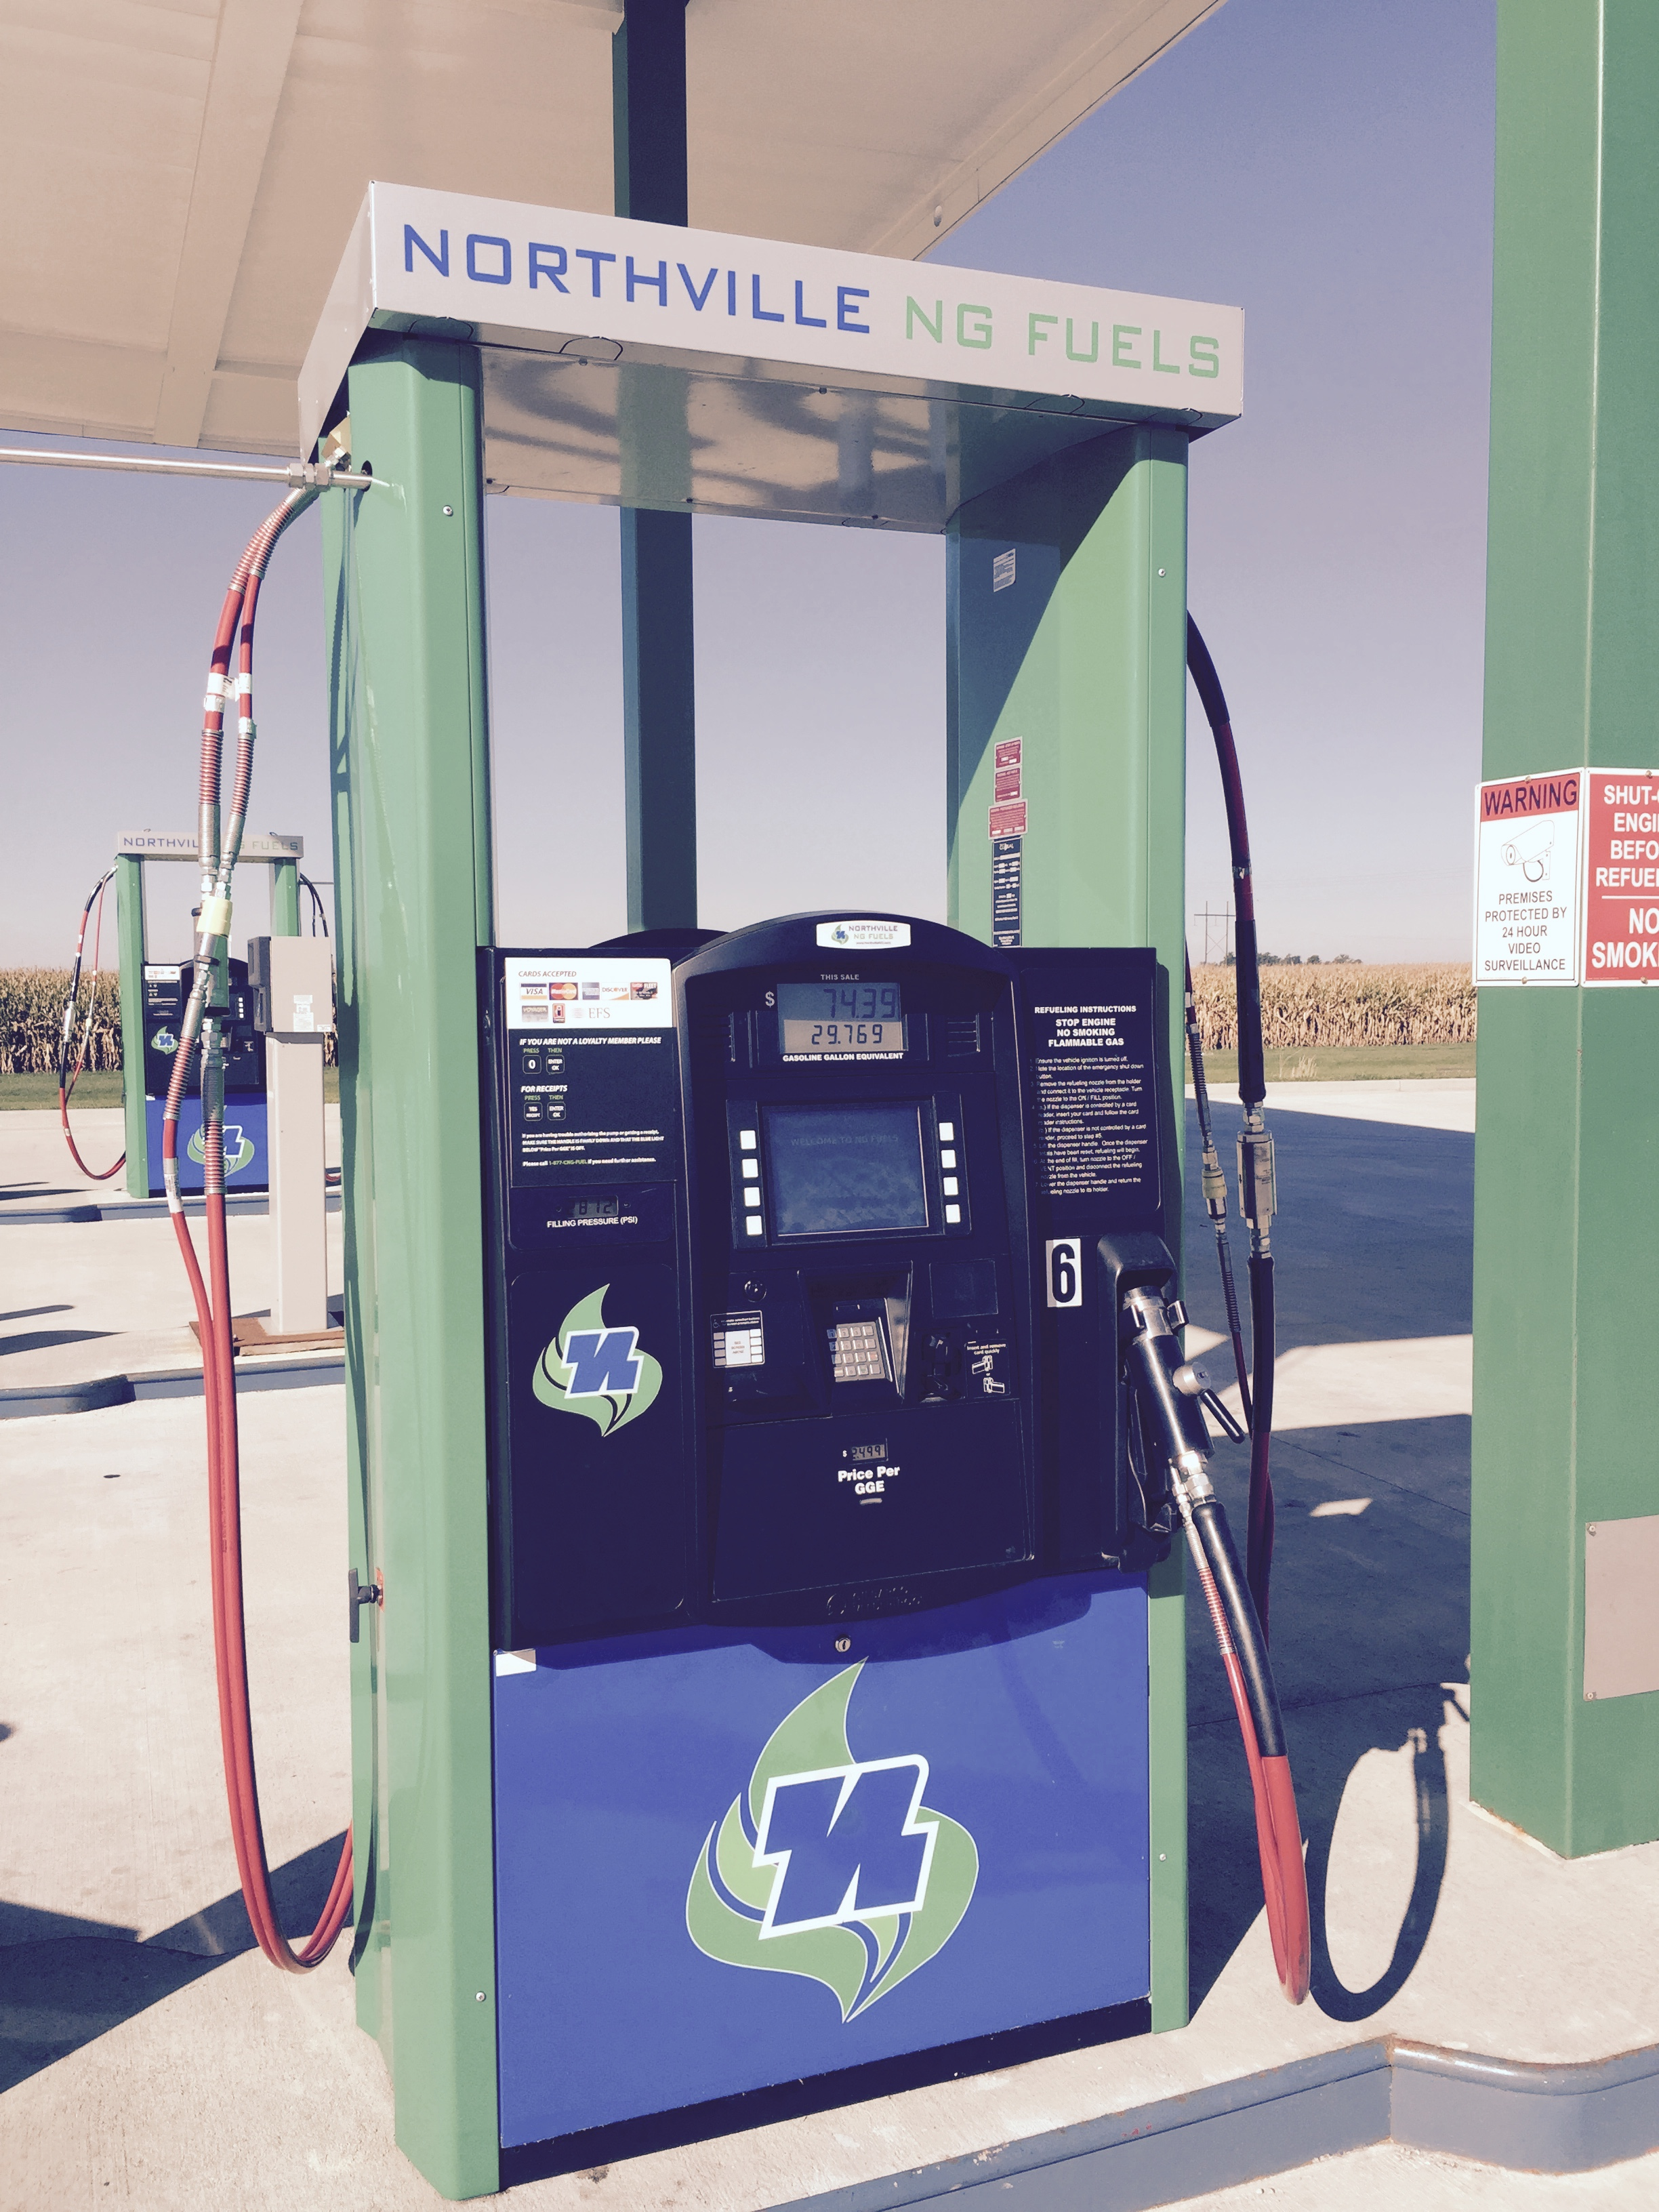 American Natural Gas Acquires Northville Ng Fuels